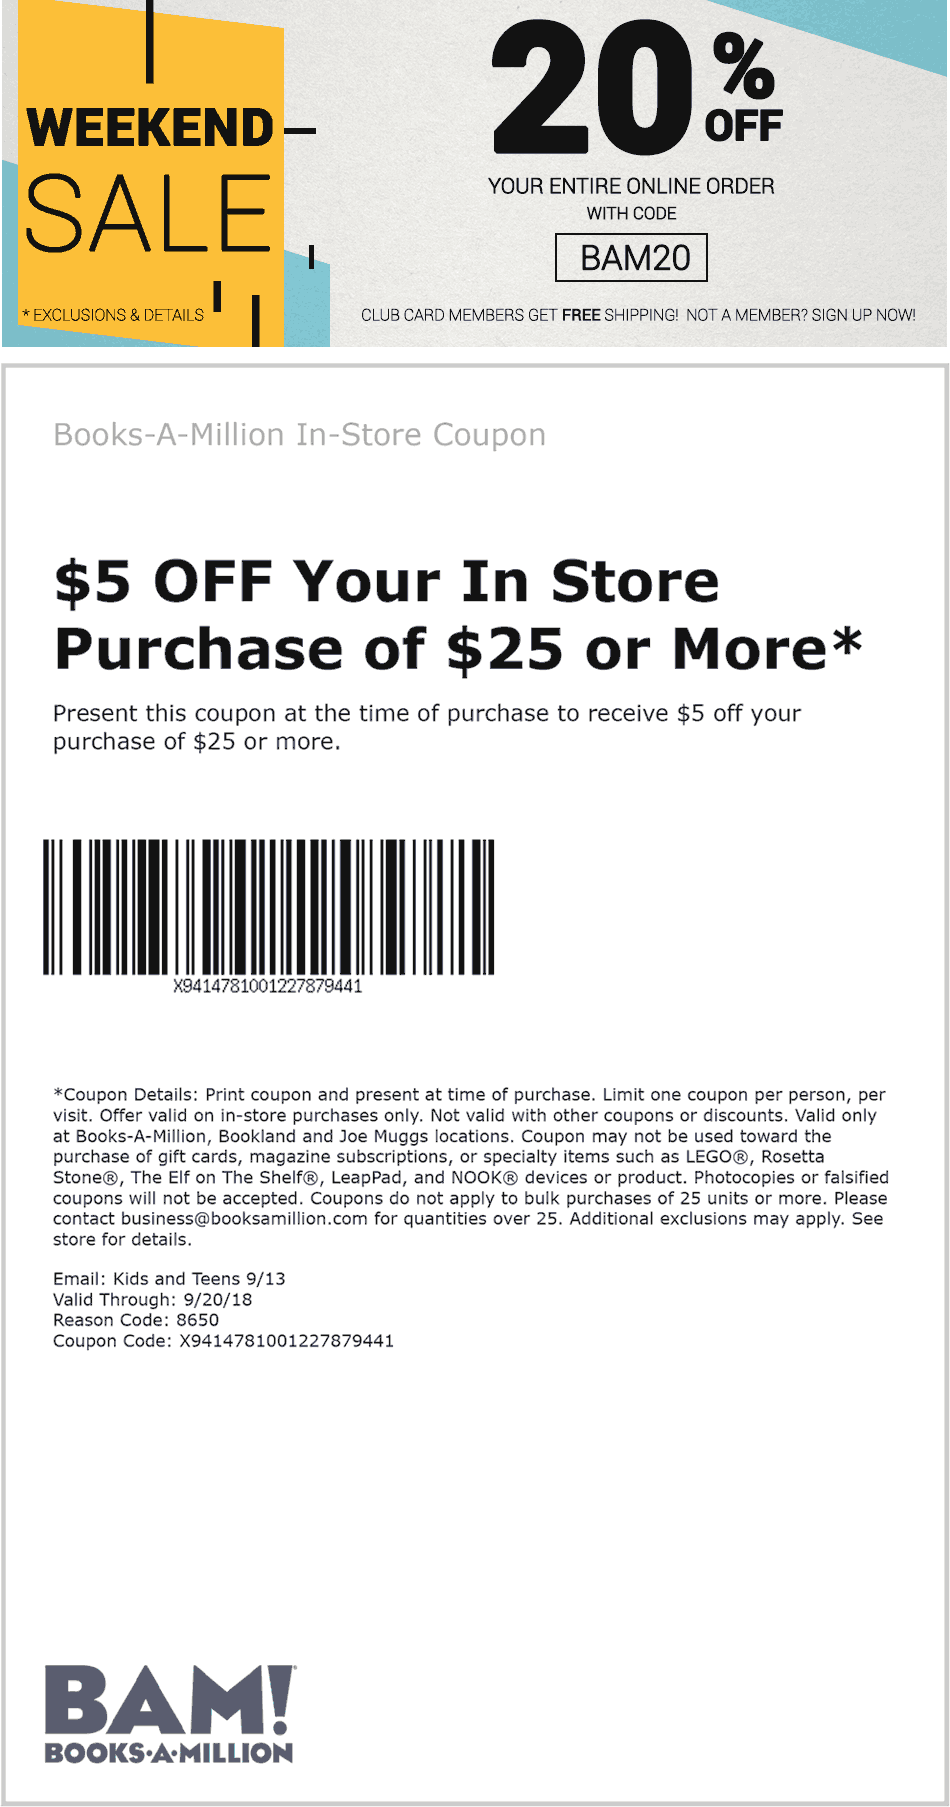 Books-A-Million Coupon November 2019 $5 off $25 at Books-A-Million, or 20% off online via promo code BAM20